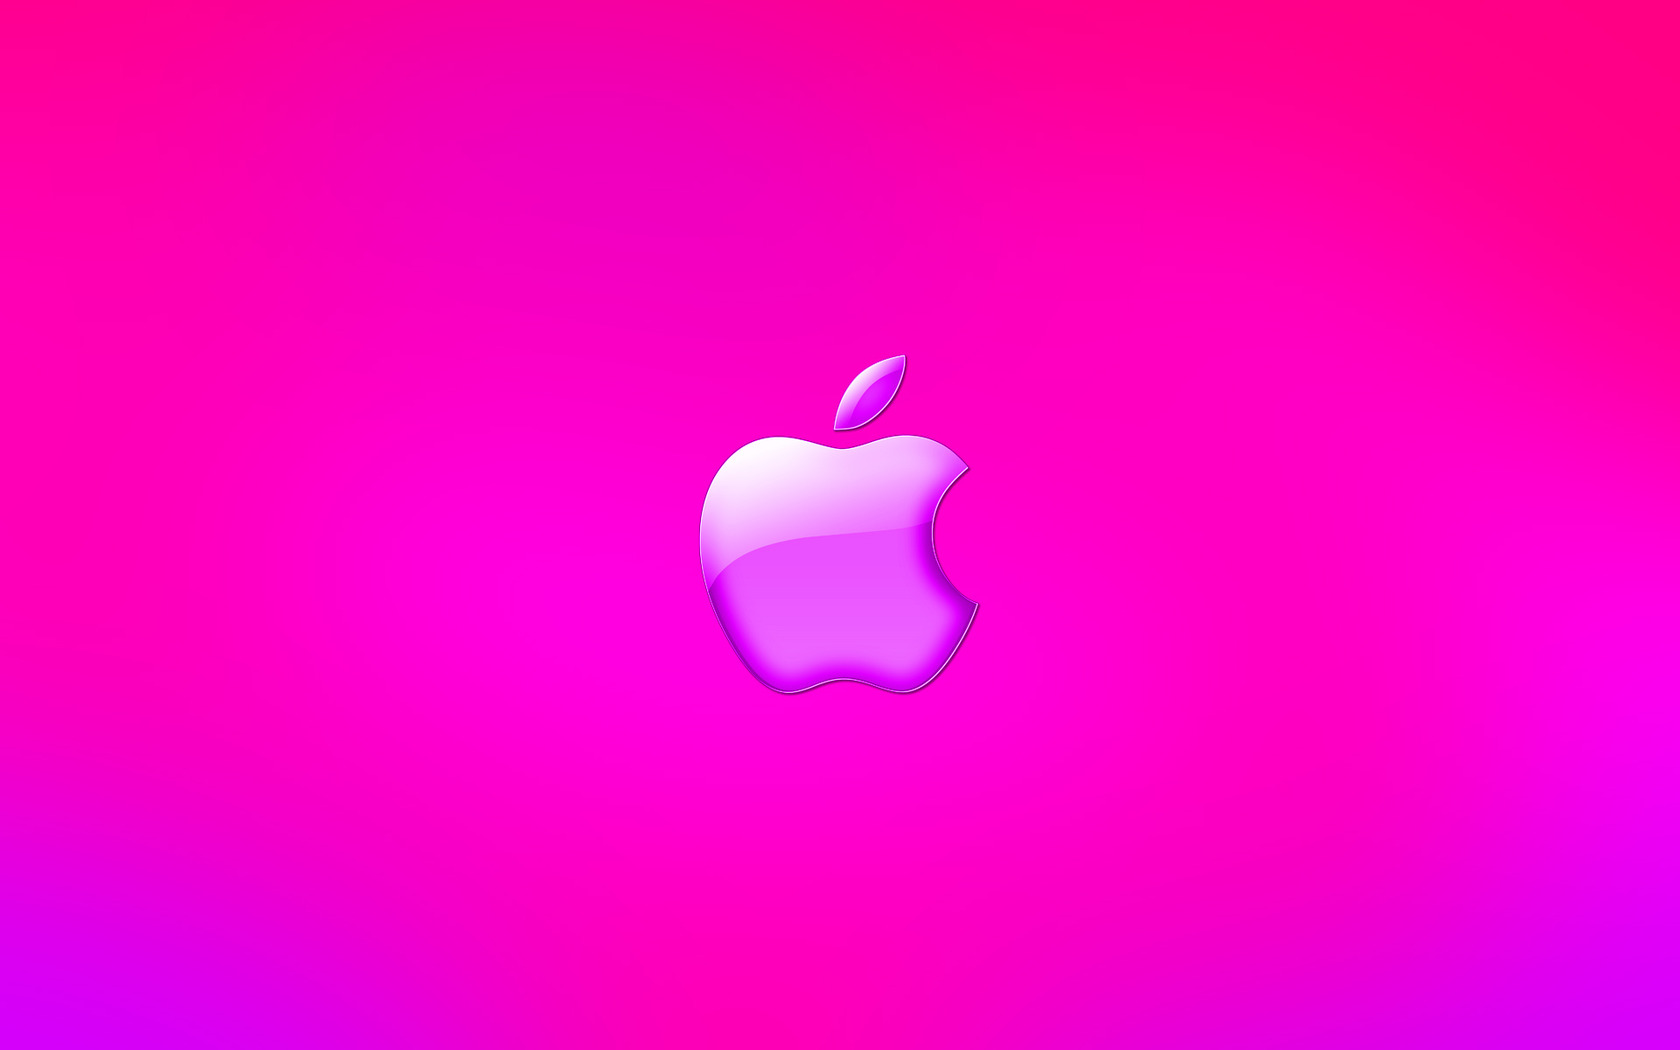 Pink Apple Logo Wallpaper